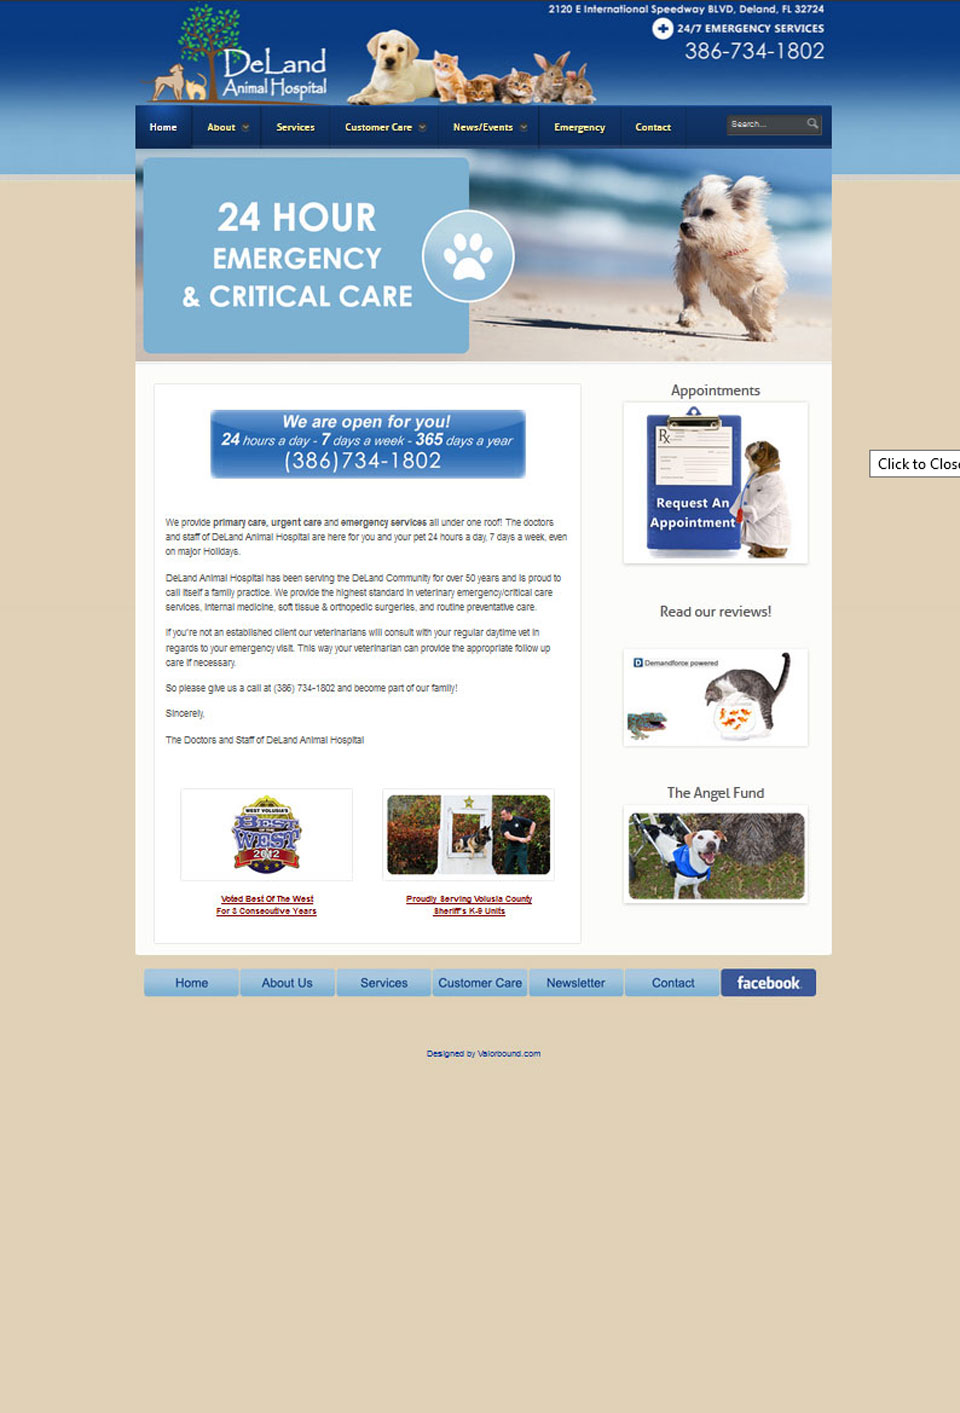 Deland Animal Hospital Website Design